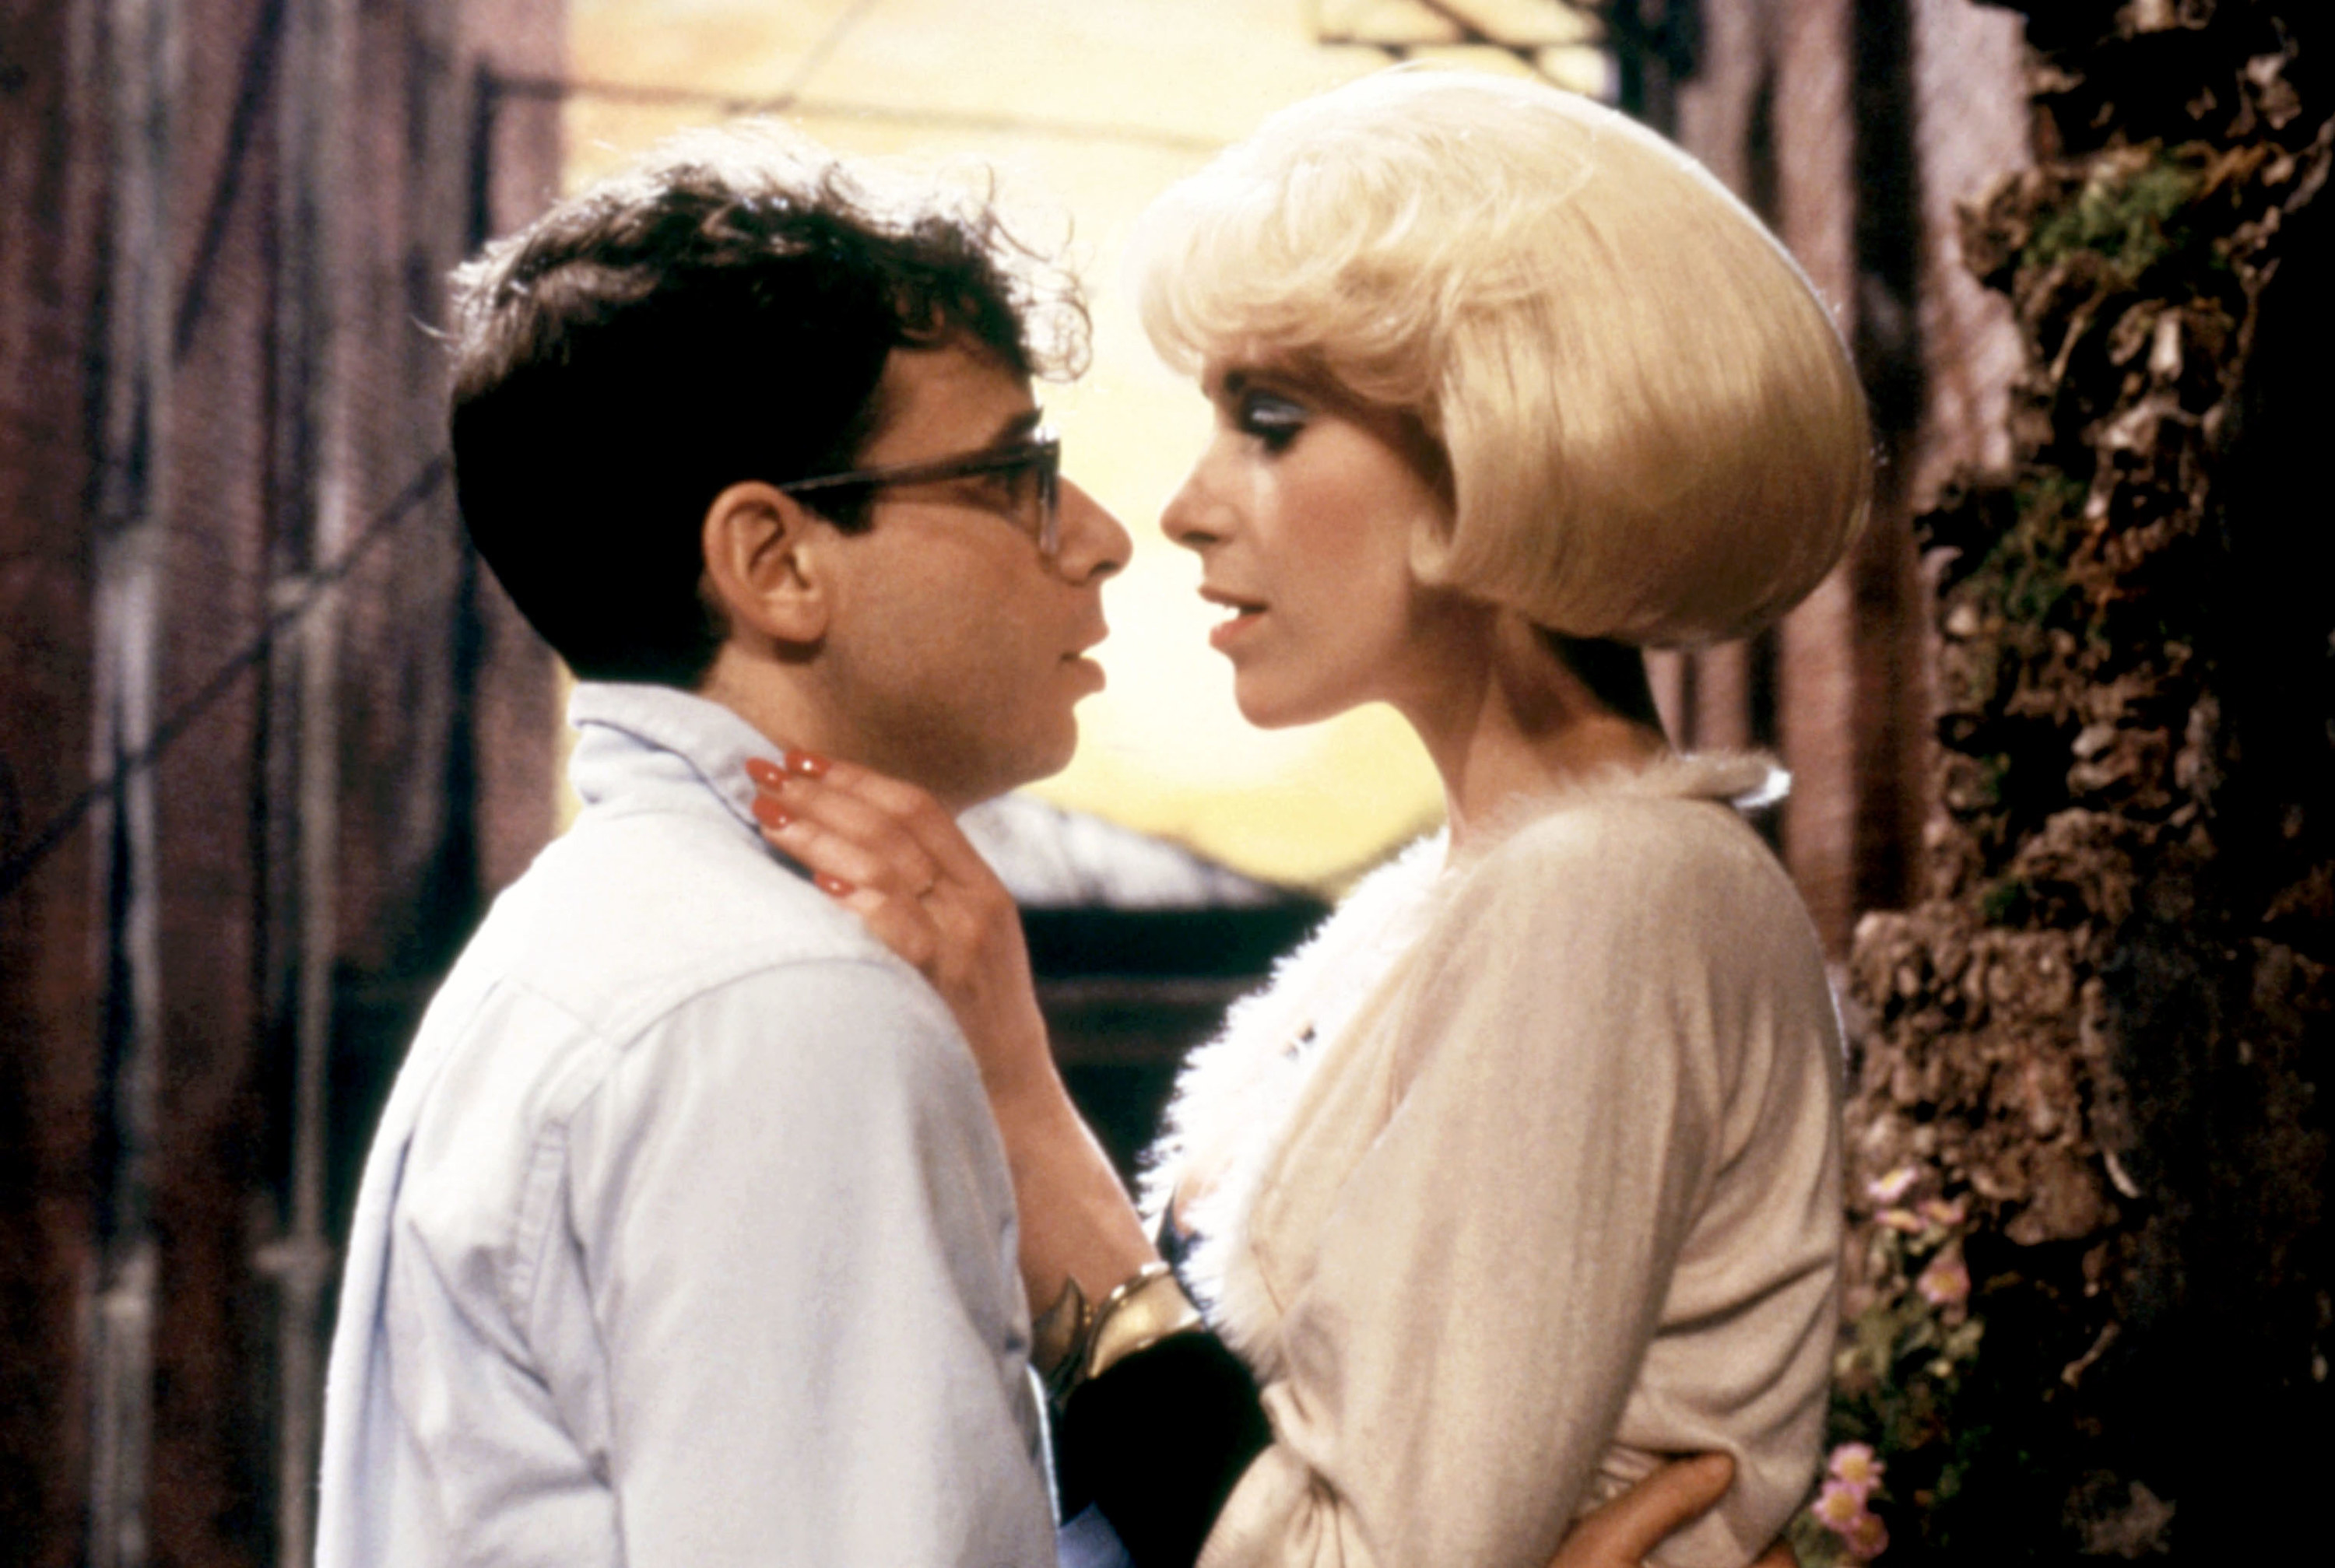 The original Audrey and Seymour in the film